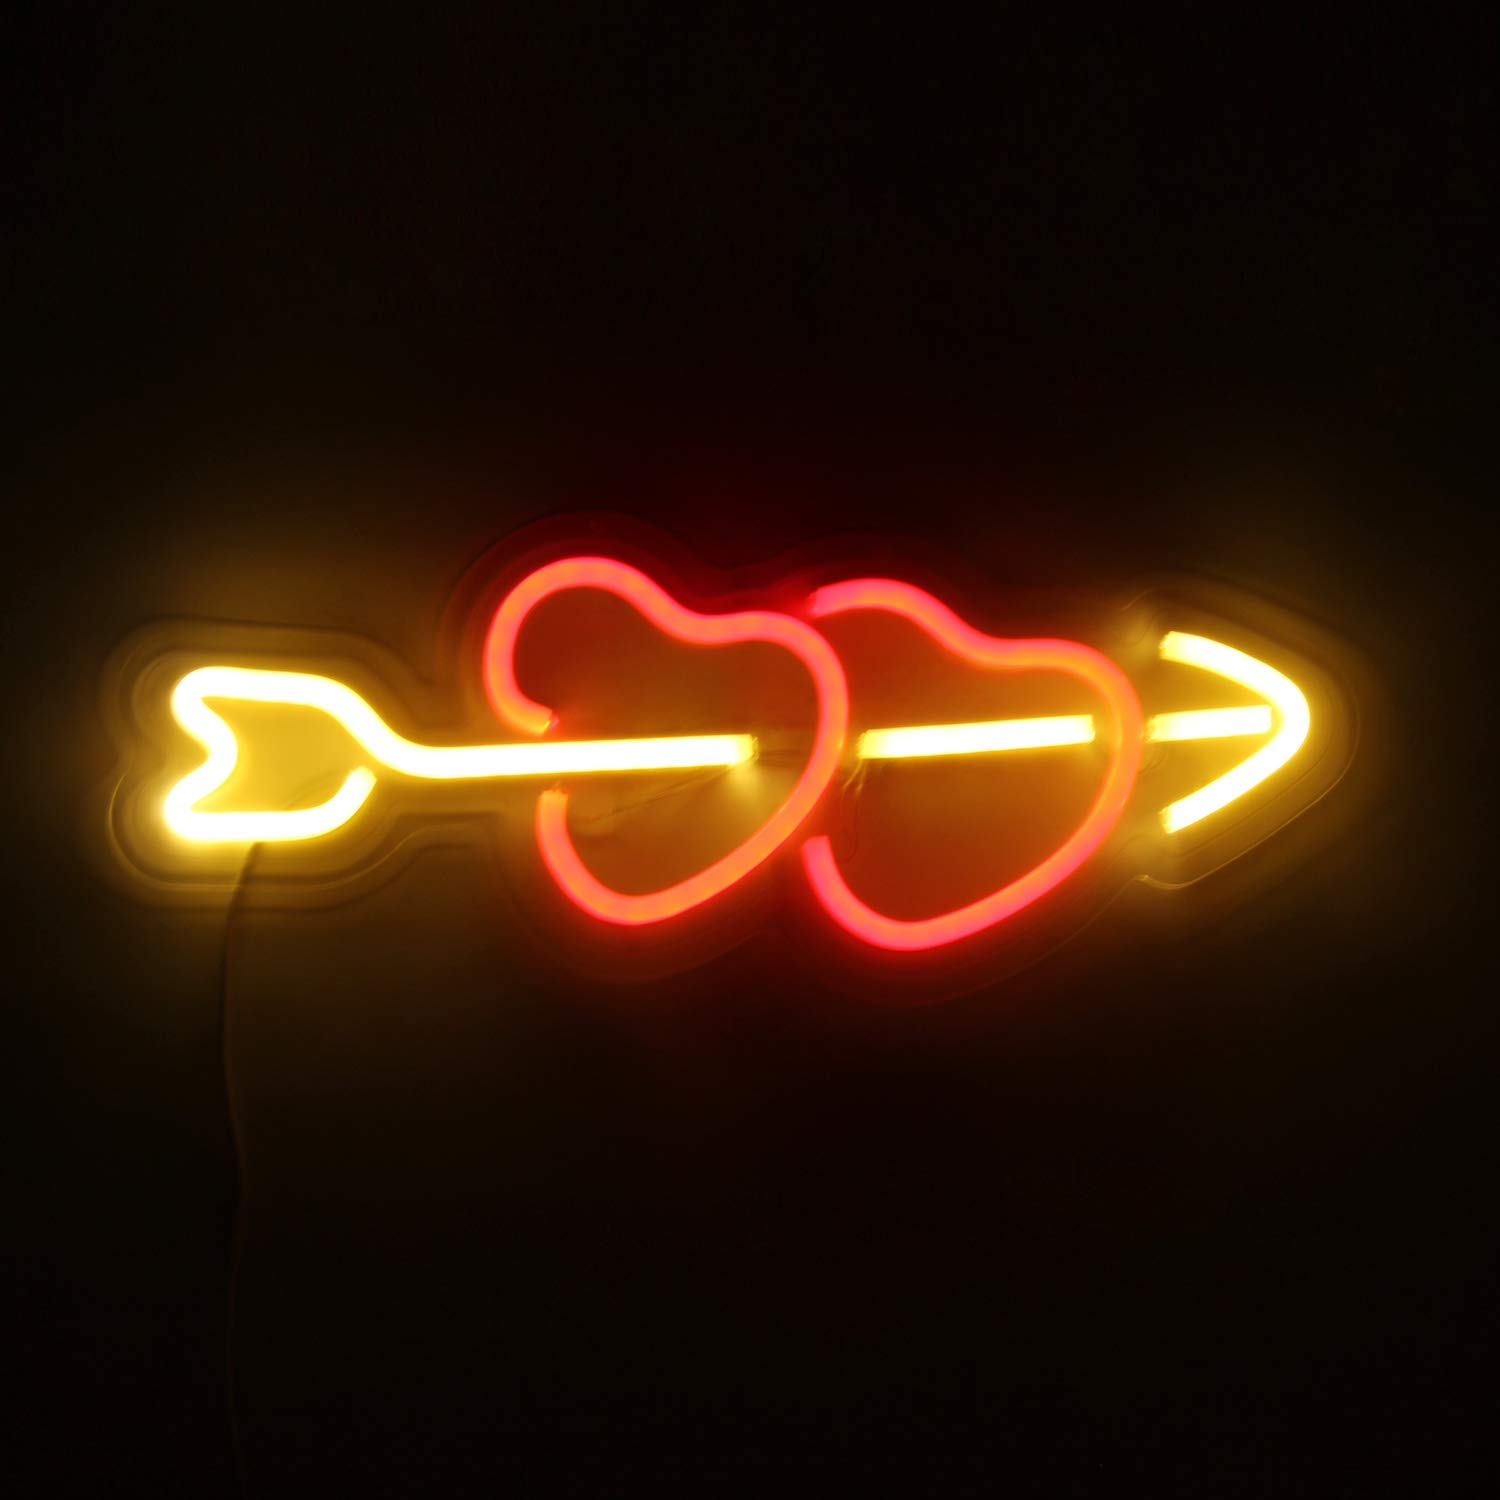 83663e6842c4 Best Rated in Neon Signs   Helpful Customer Reviews - Amazon.com